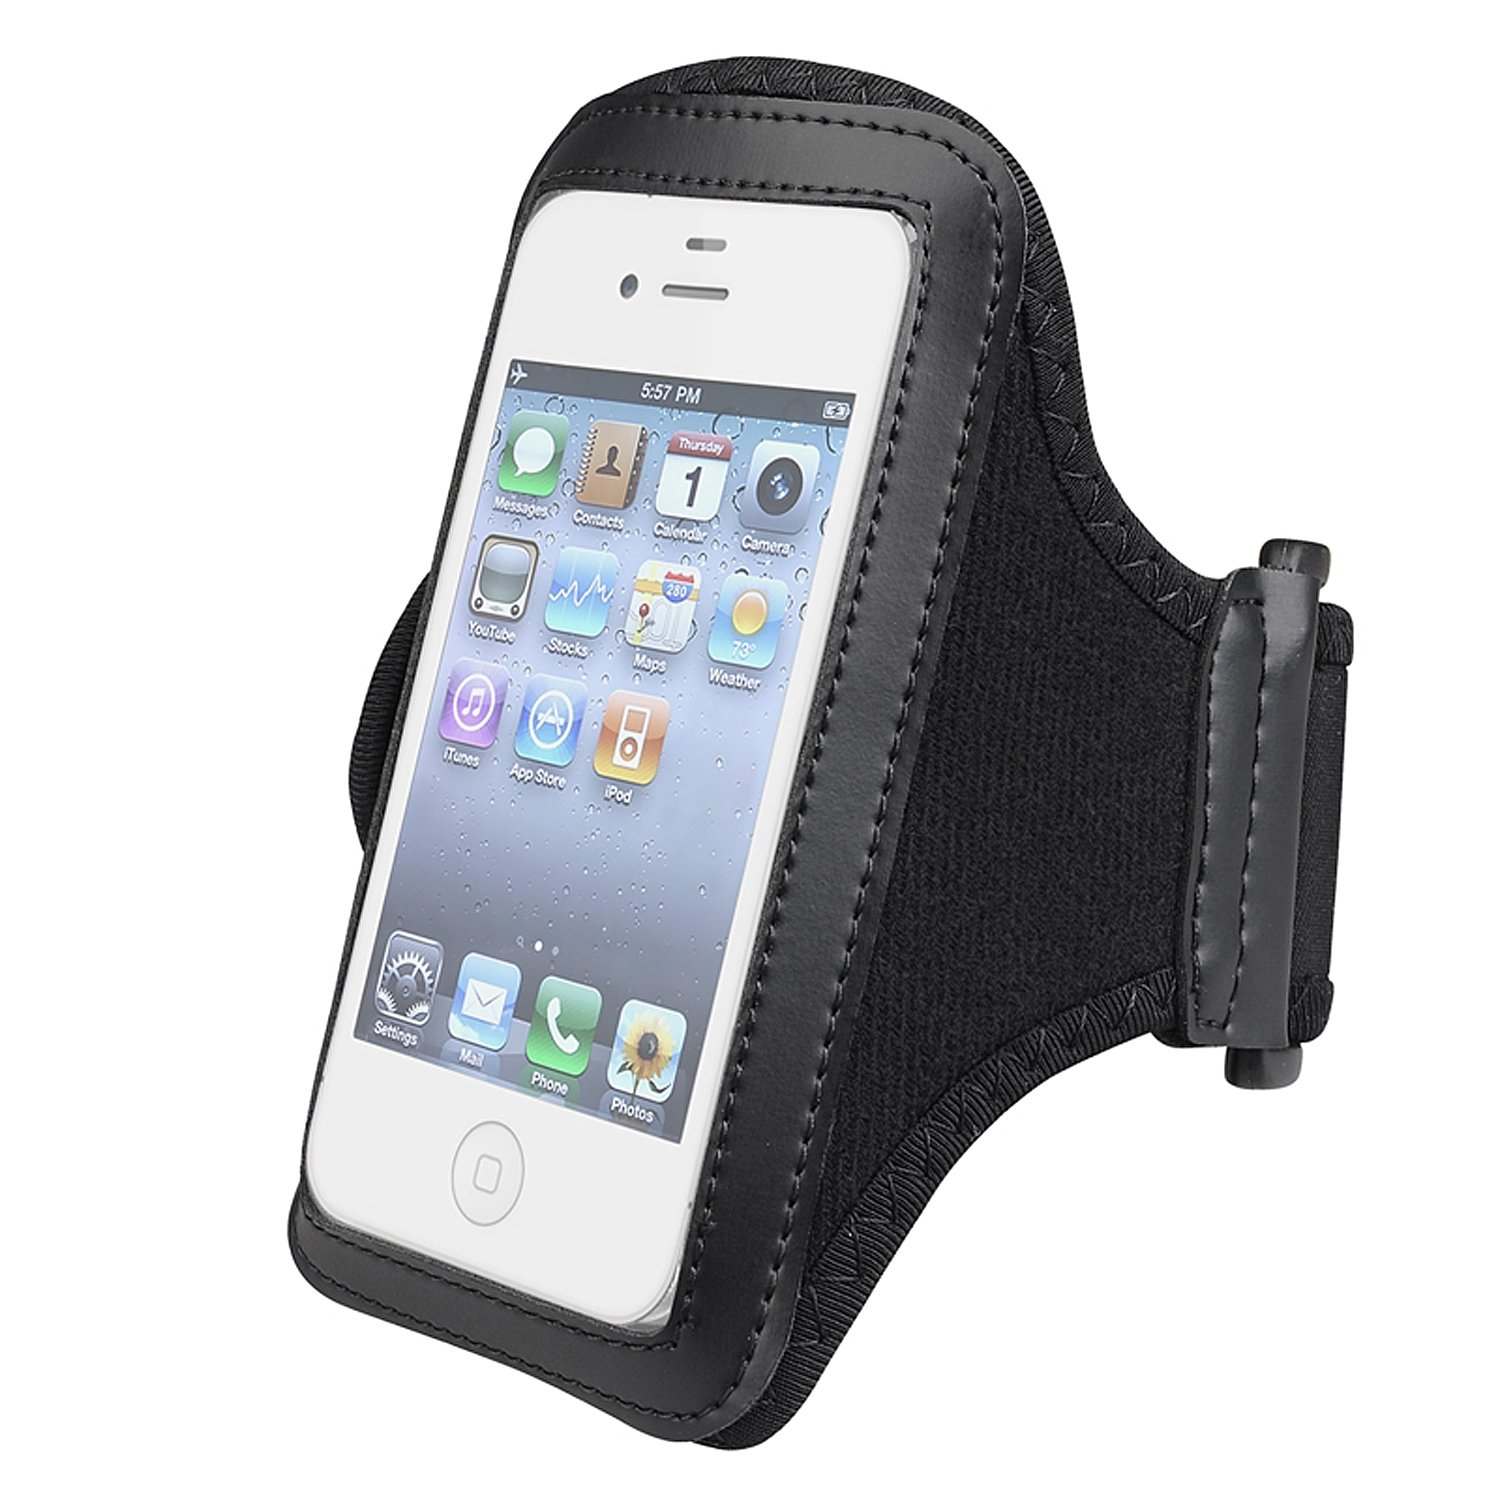 Phone holder for arm